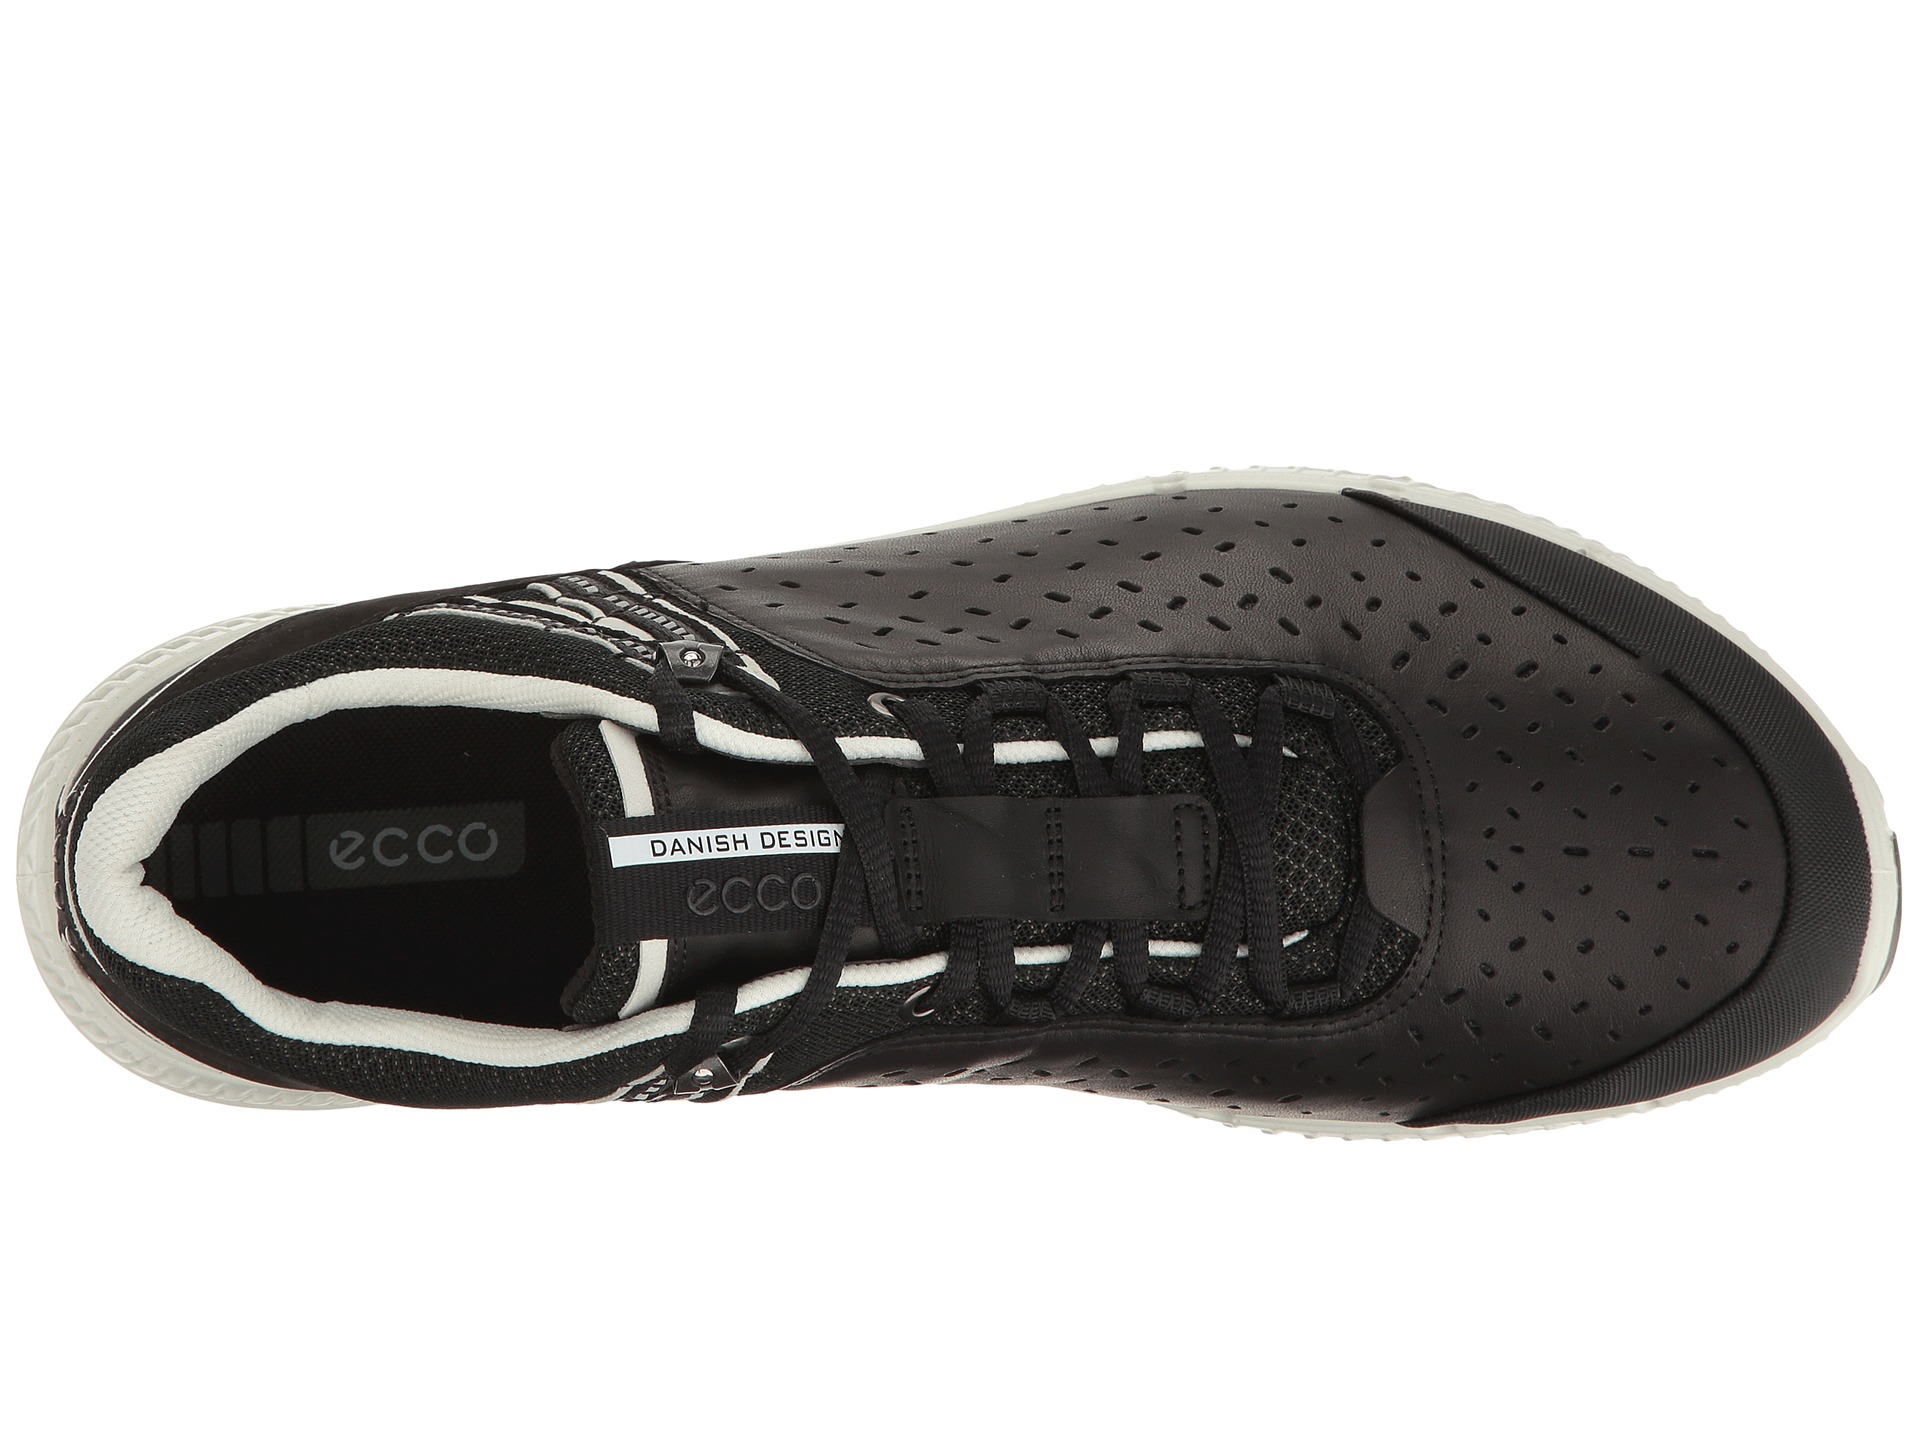 All Ecco Shoes   Nordstrom